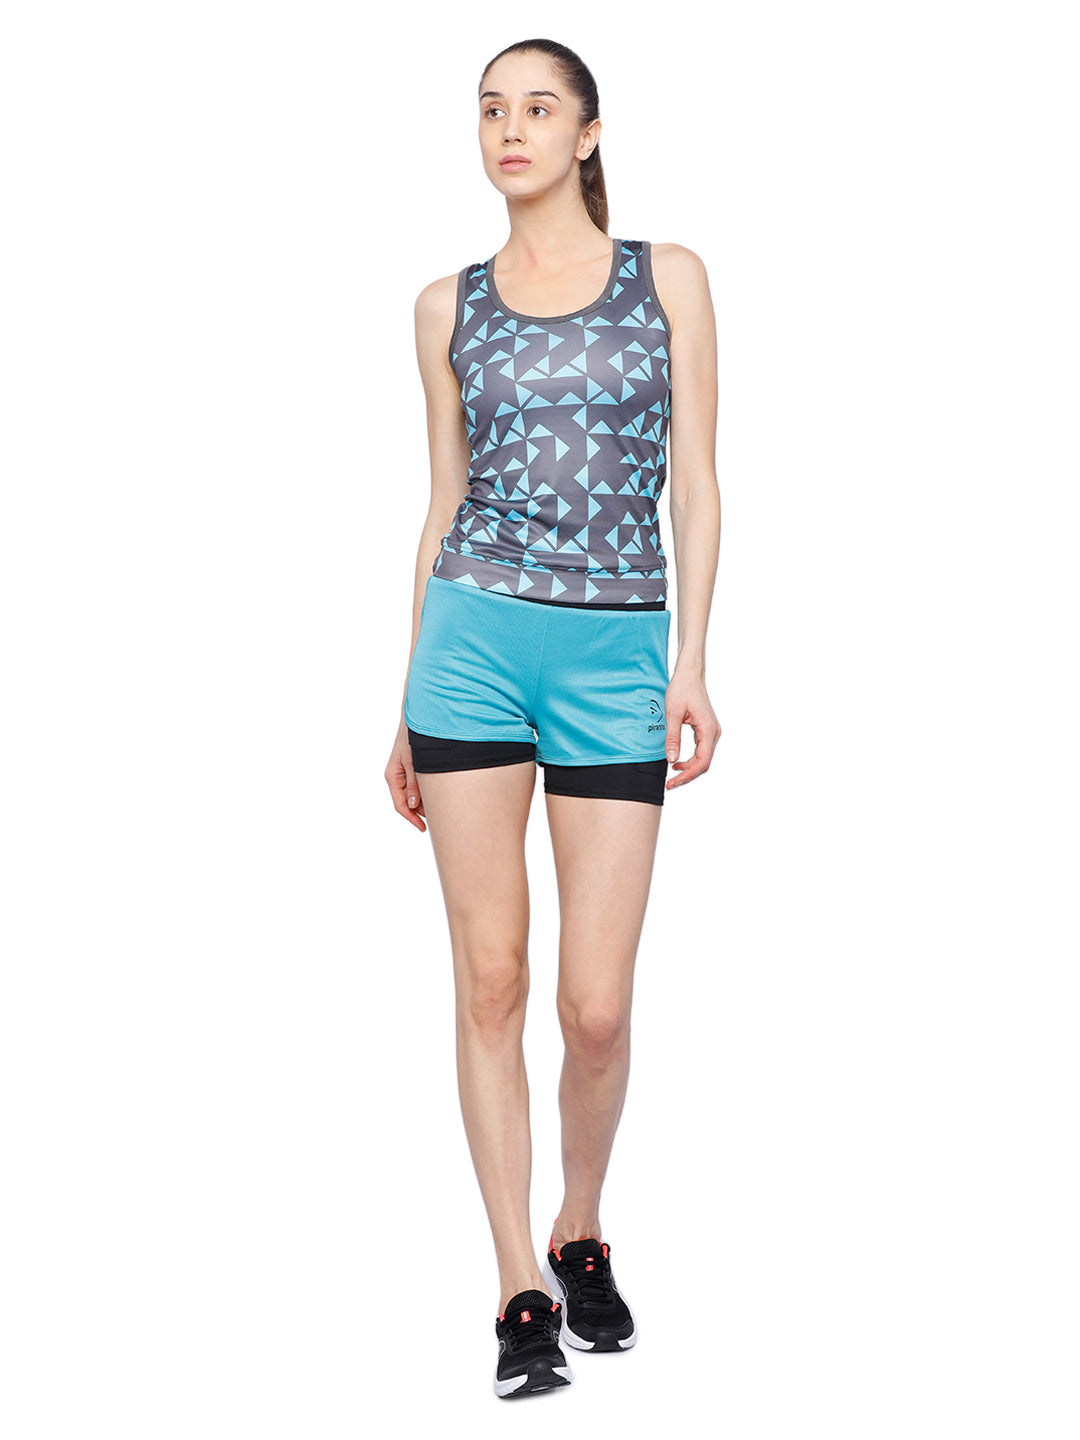 Piranha Women's Grey Tank Top TT301